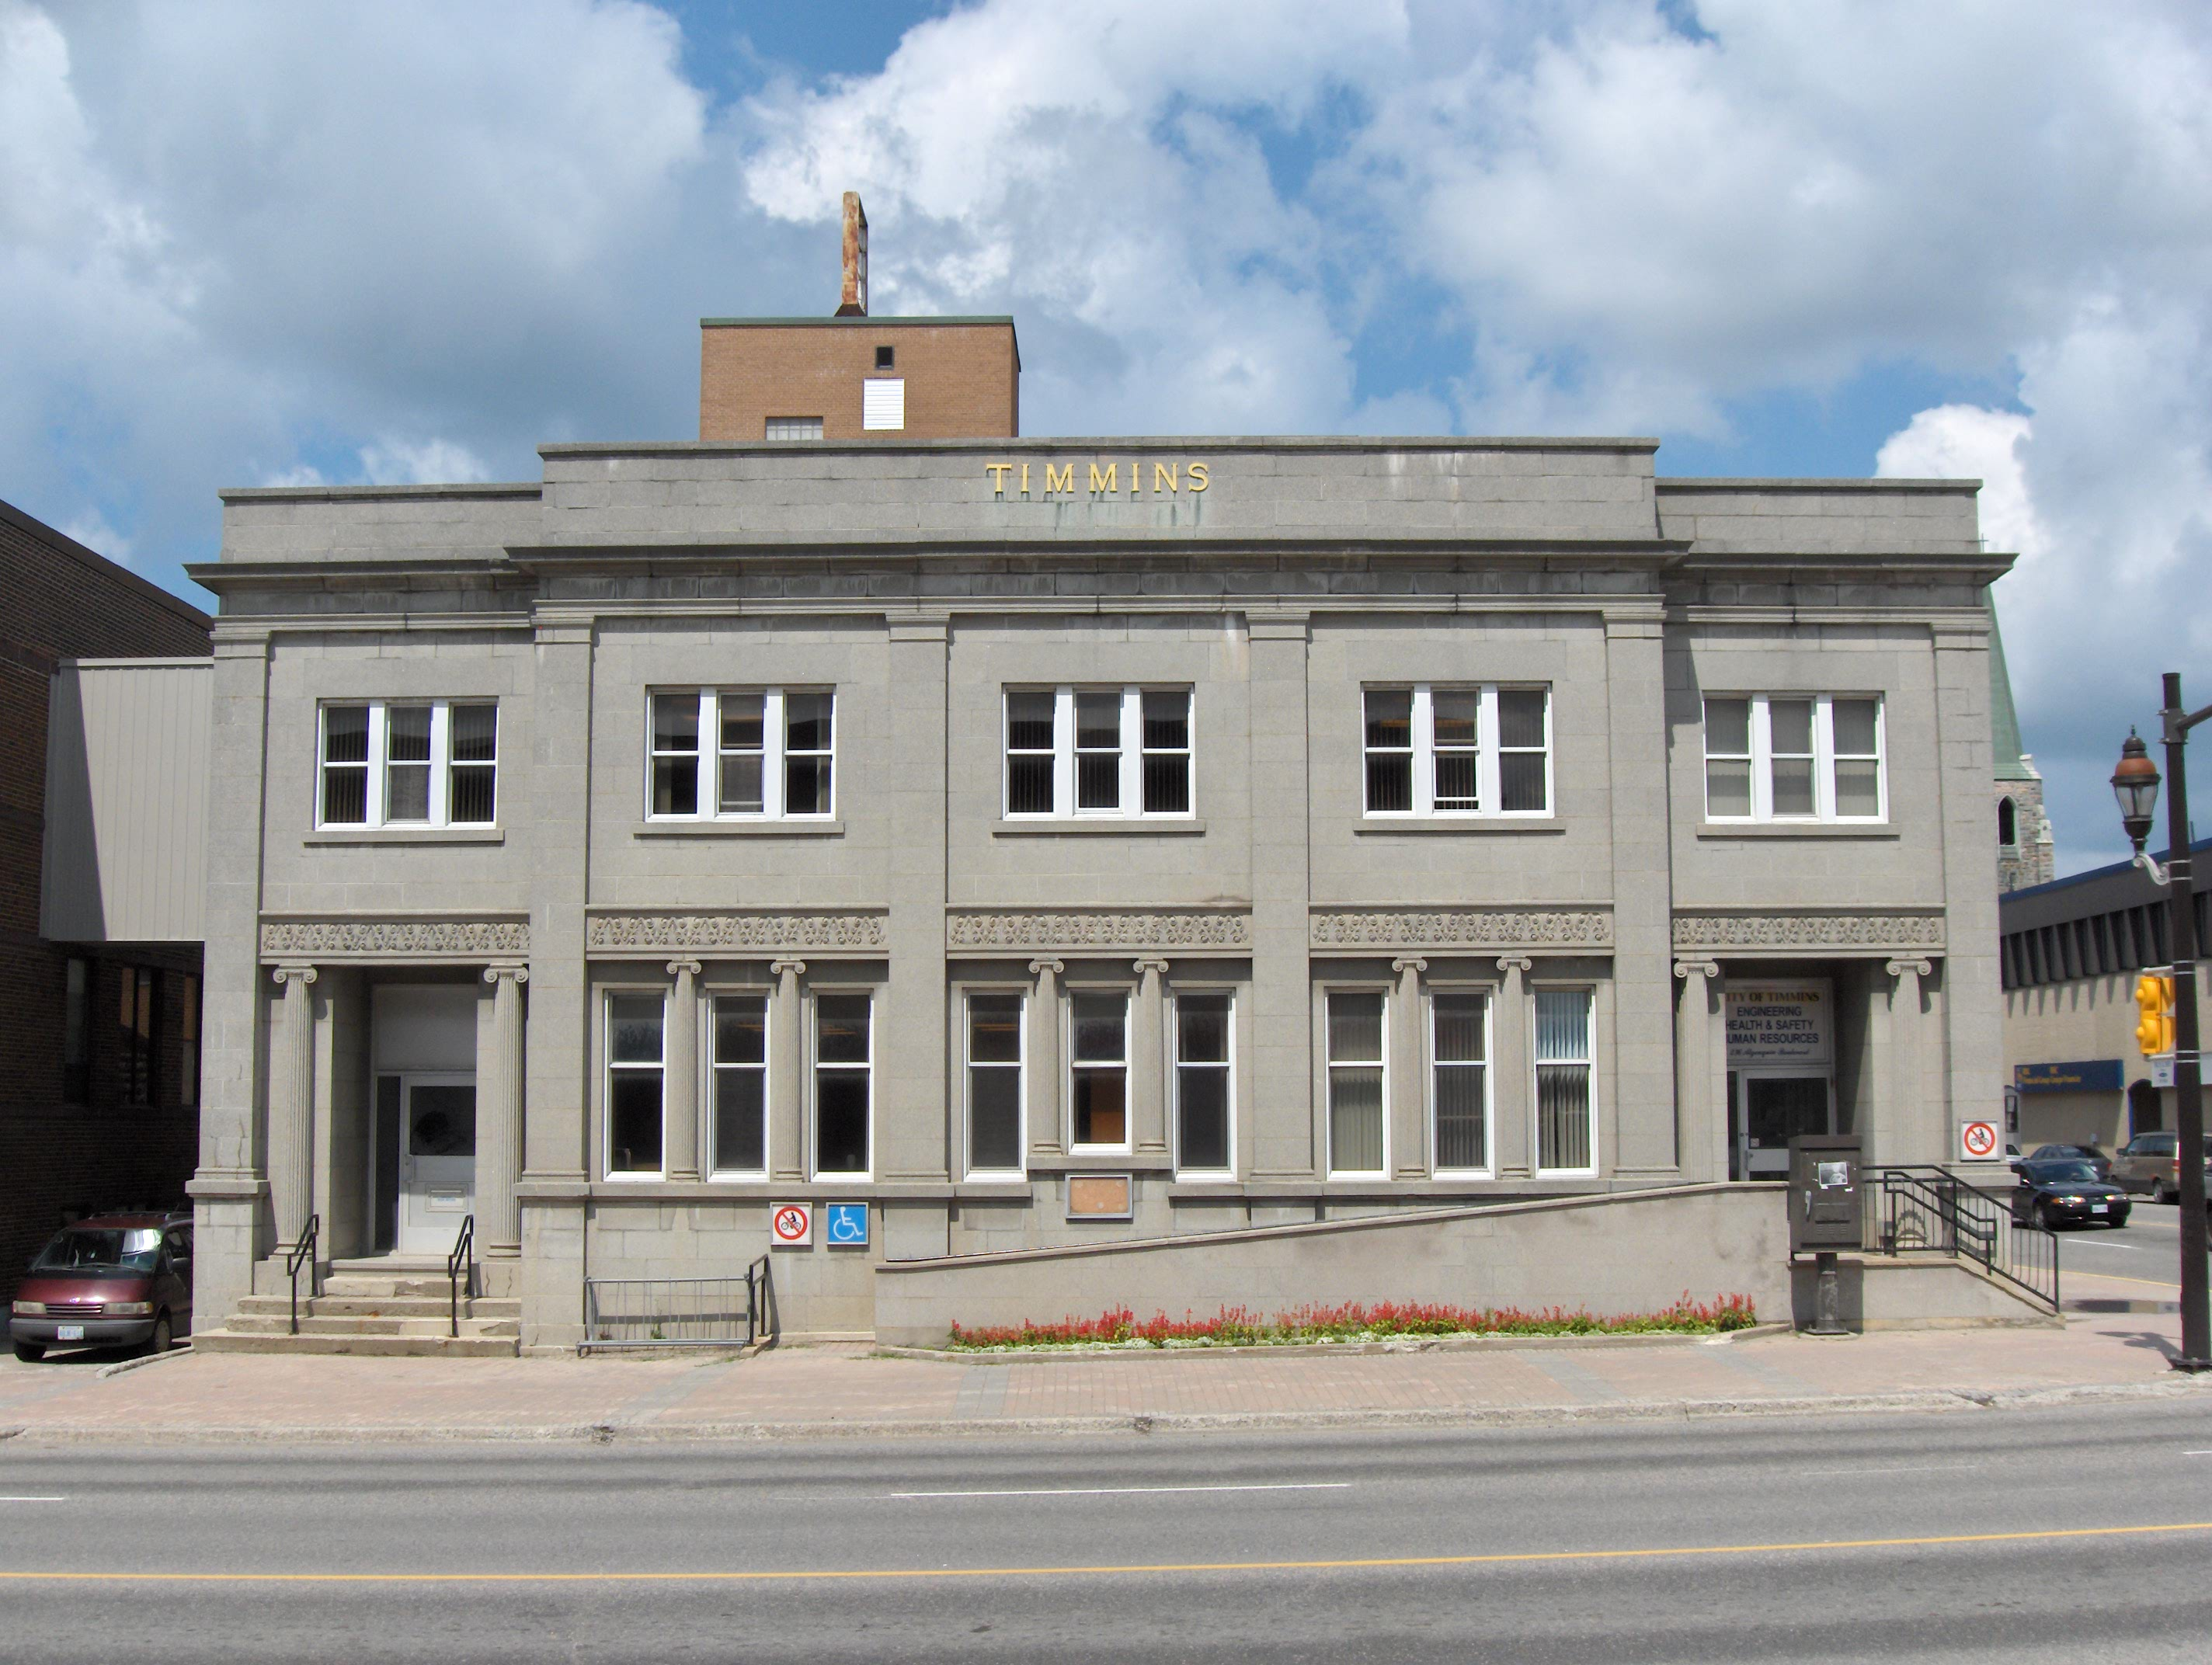 File:City Hall Engineering Building in Timmins, Ontario ...